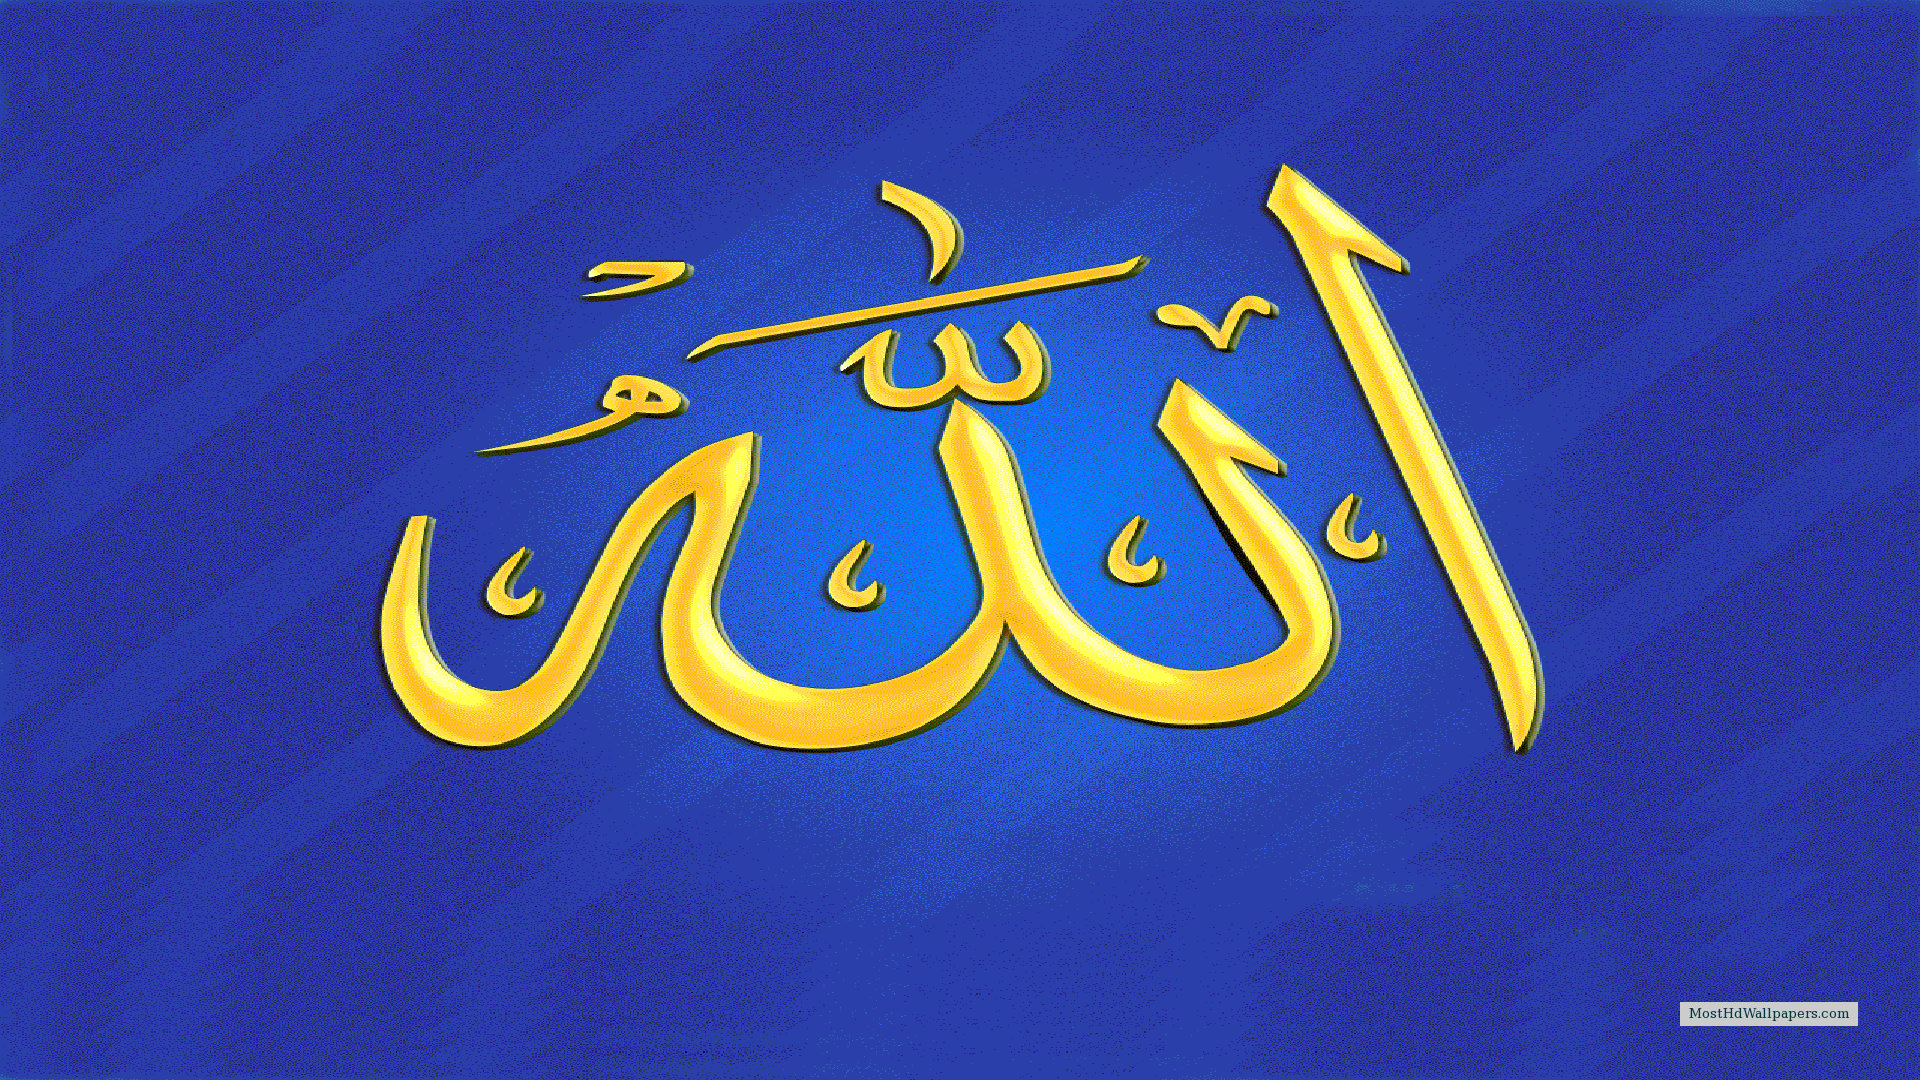 Beautiful HD Islamic Wallpapers Most HD Wallpapers Pictures Desktop 1920x1080